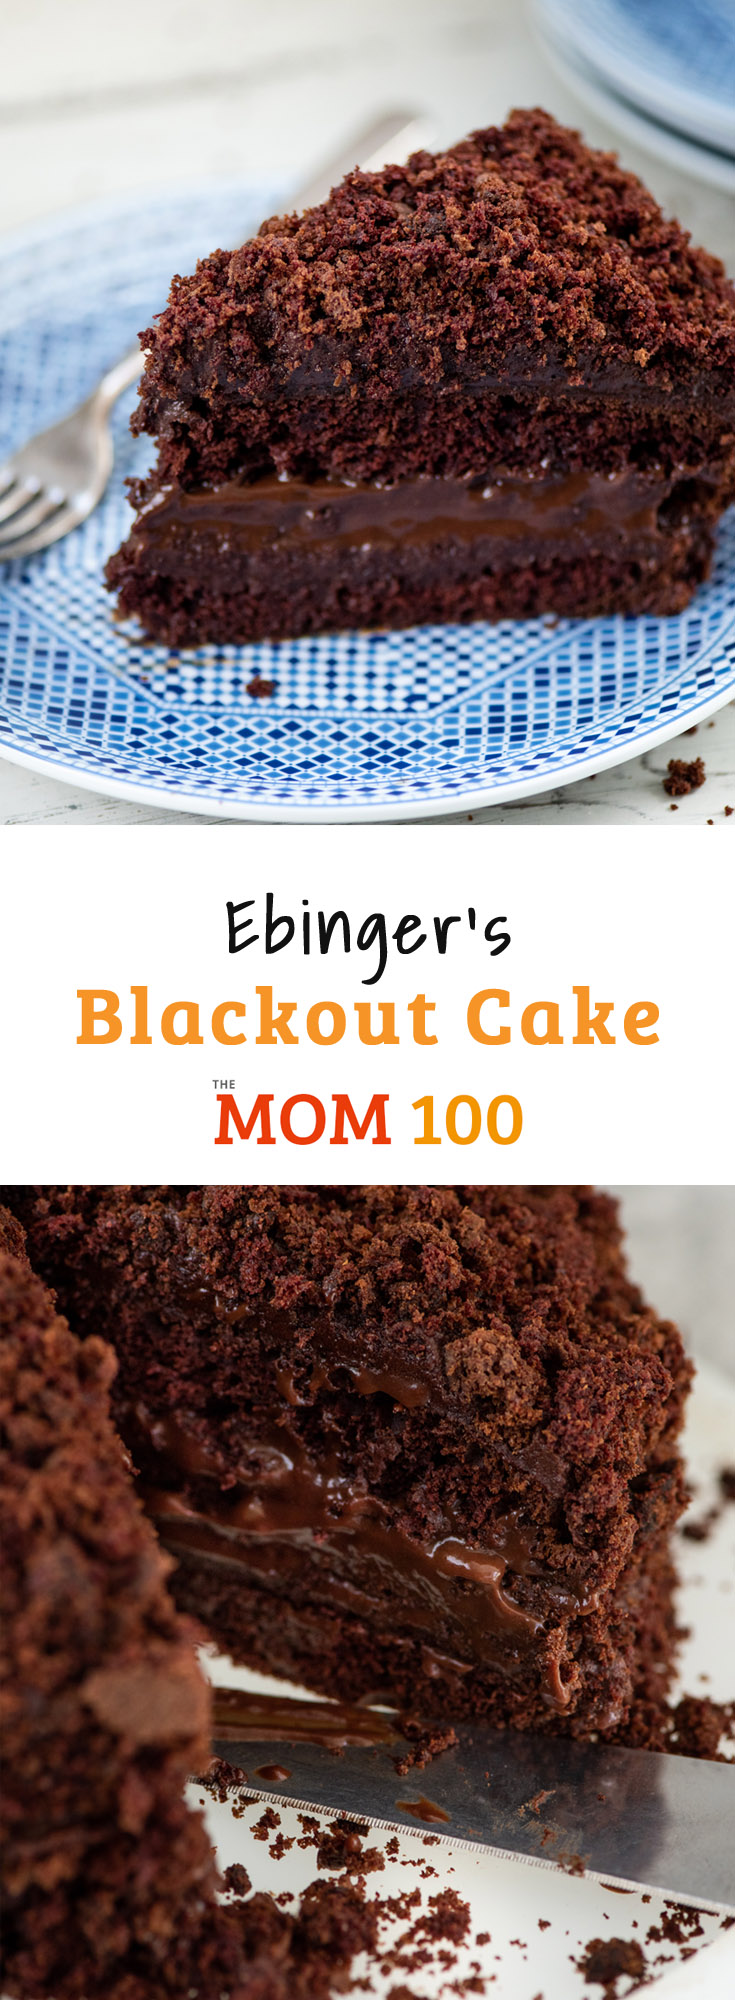 Ebinger's Blackout Cake is the chocolatey, moist and legendary cake from the popular Brooklyn bakery that disappeared in 1972. Lives up to the hype!